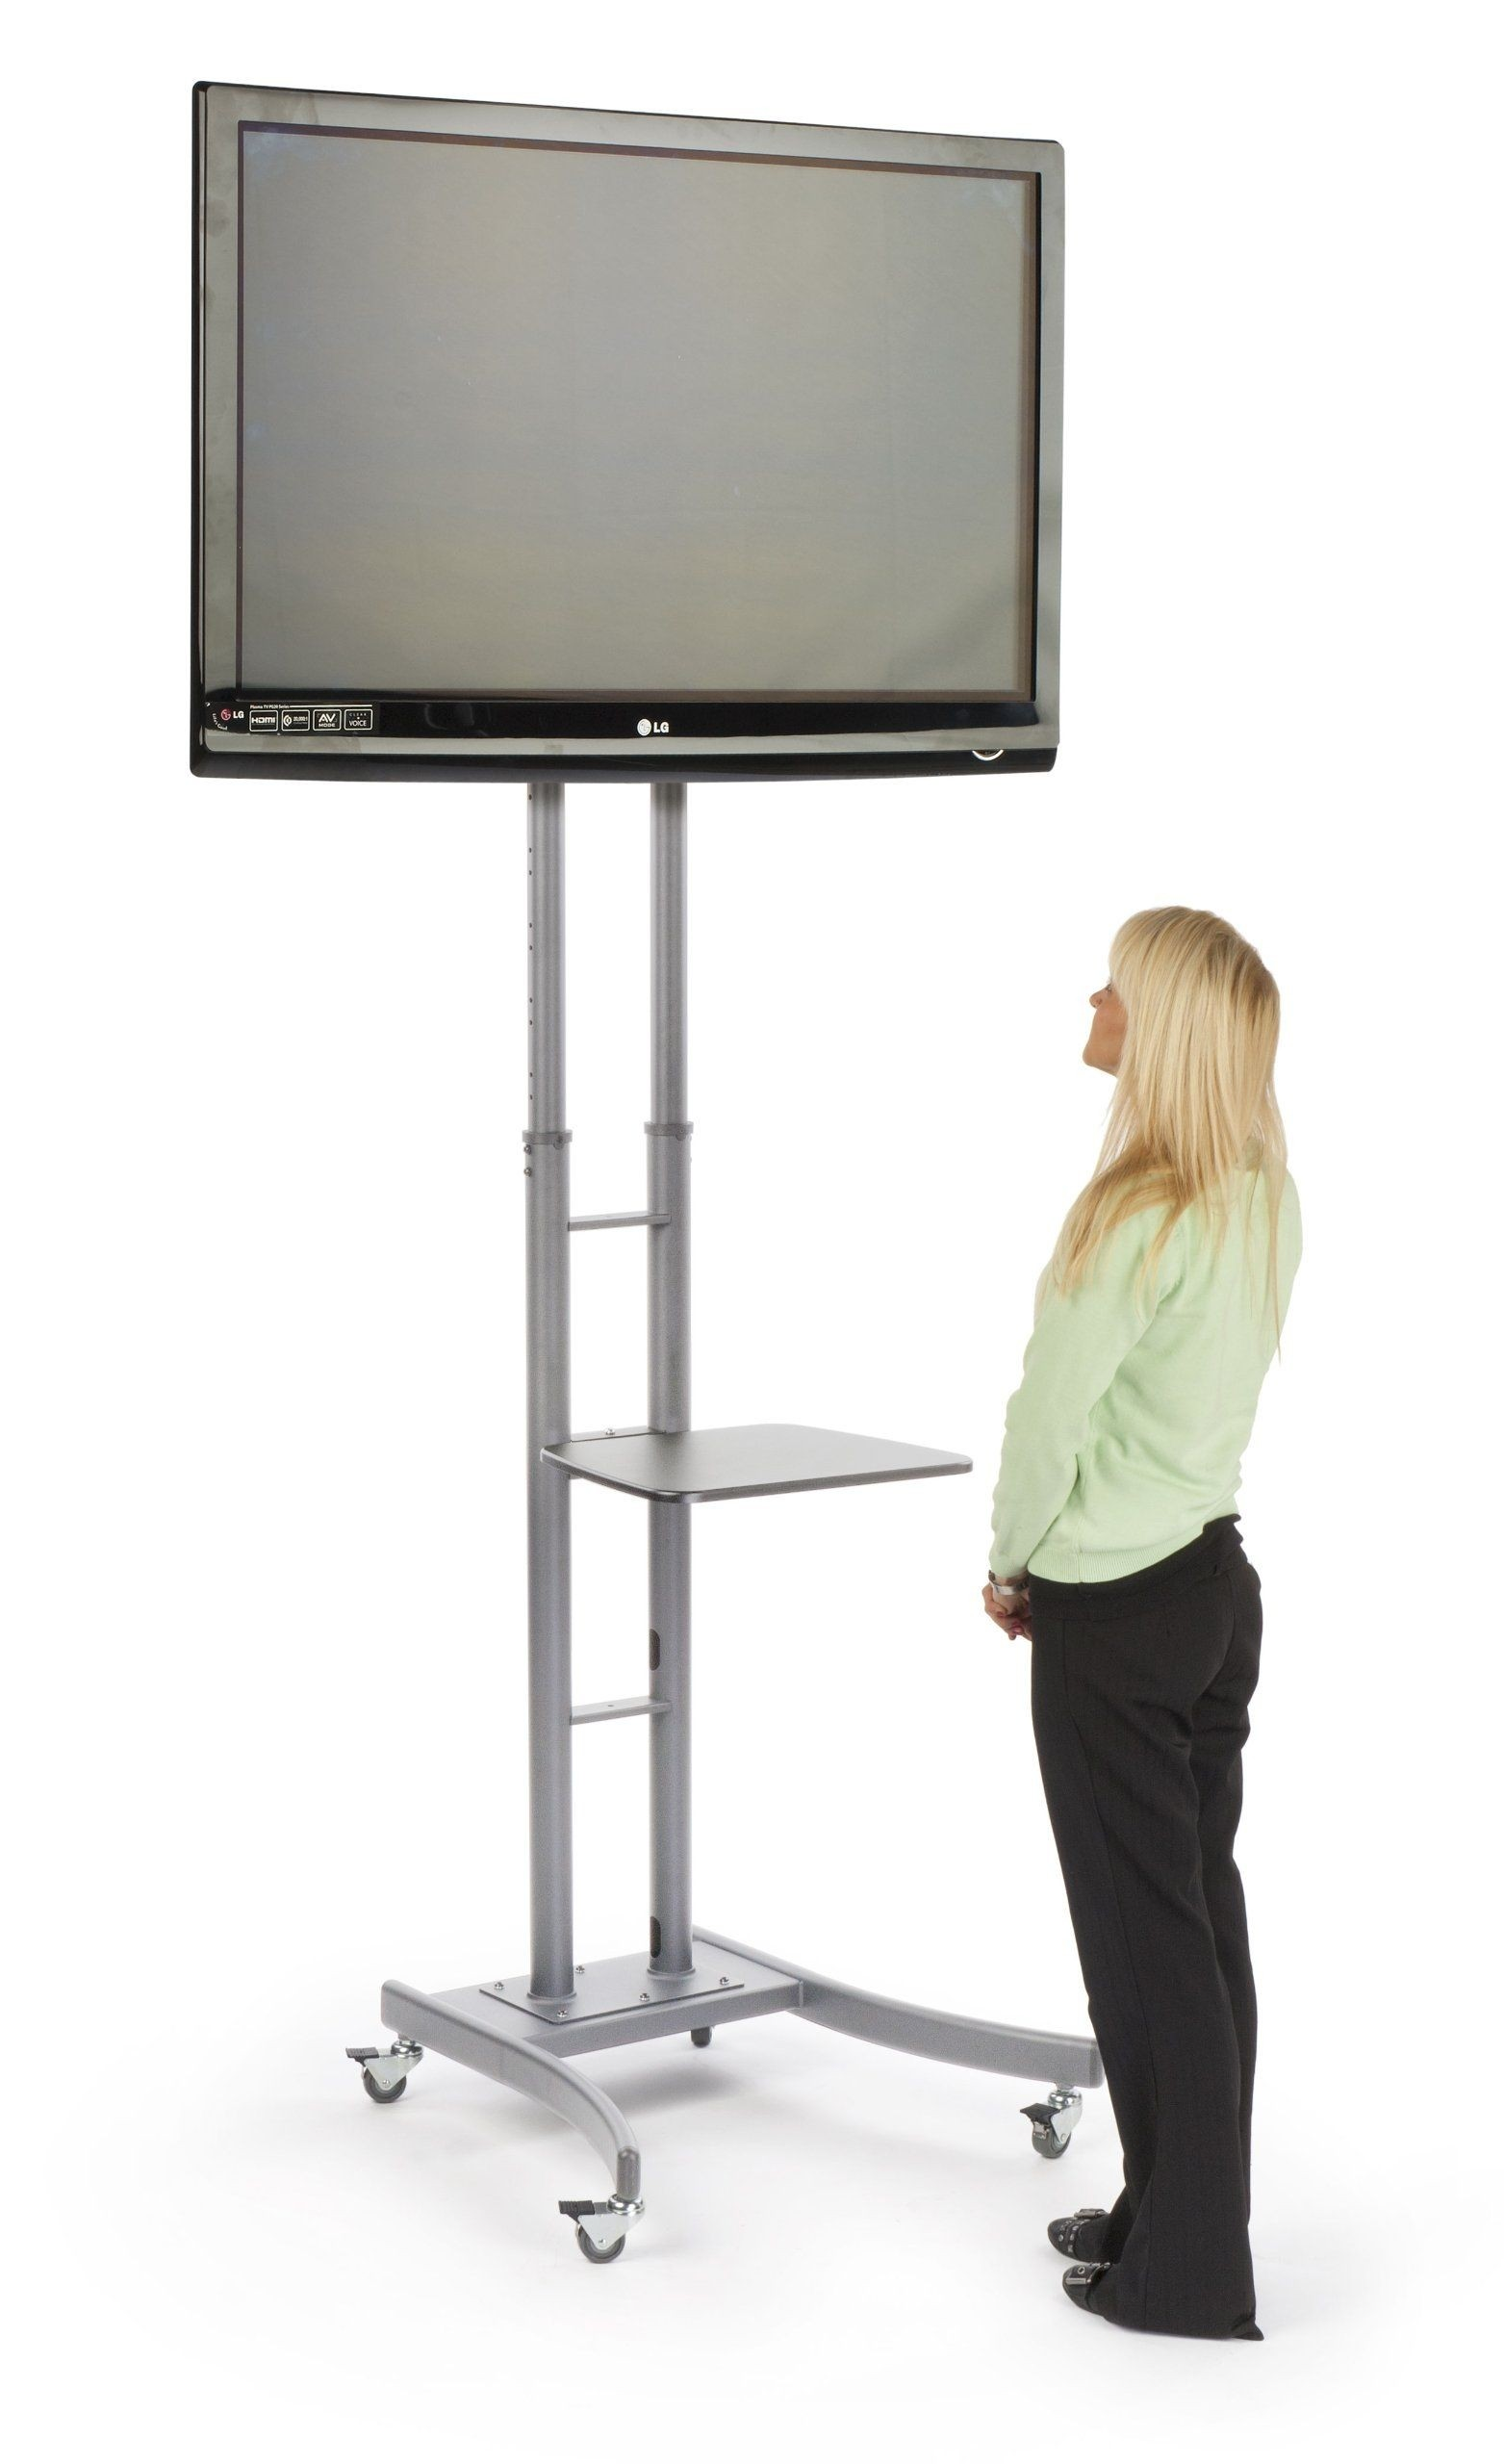 Portable TV Stand With Wheels For LCD, Plasma Or LED TVs Between 32 And 84